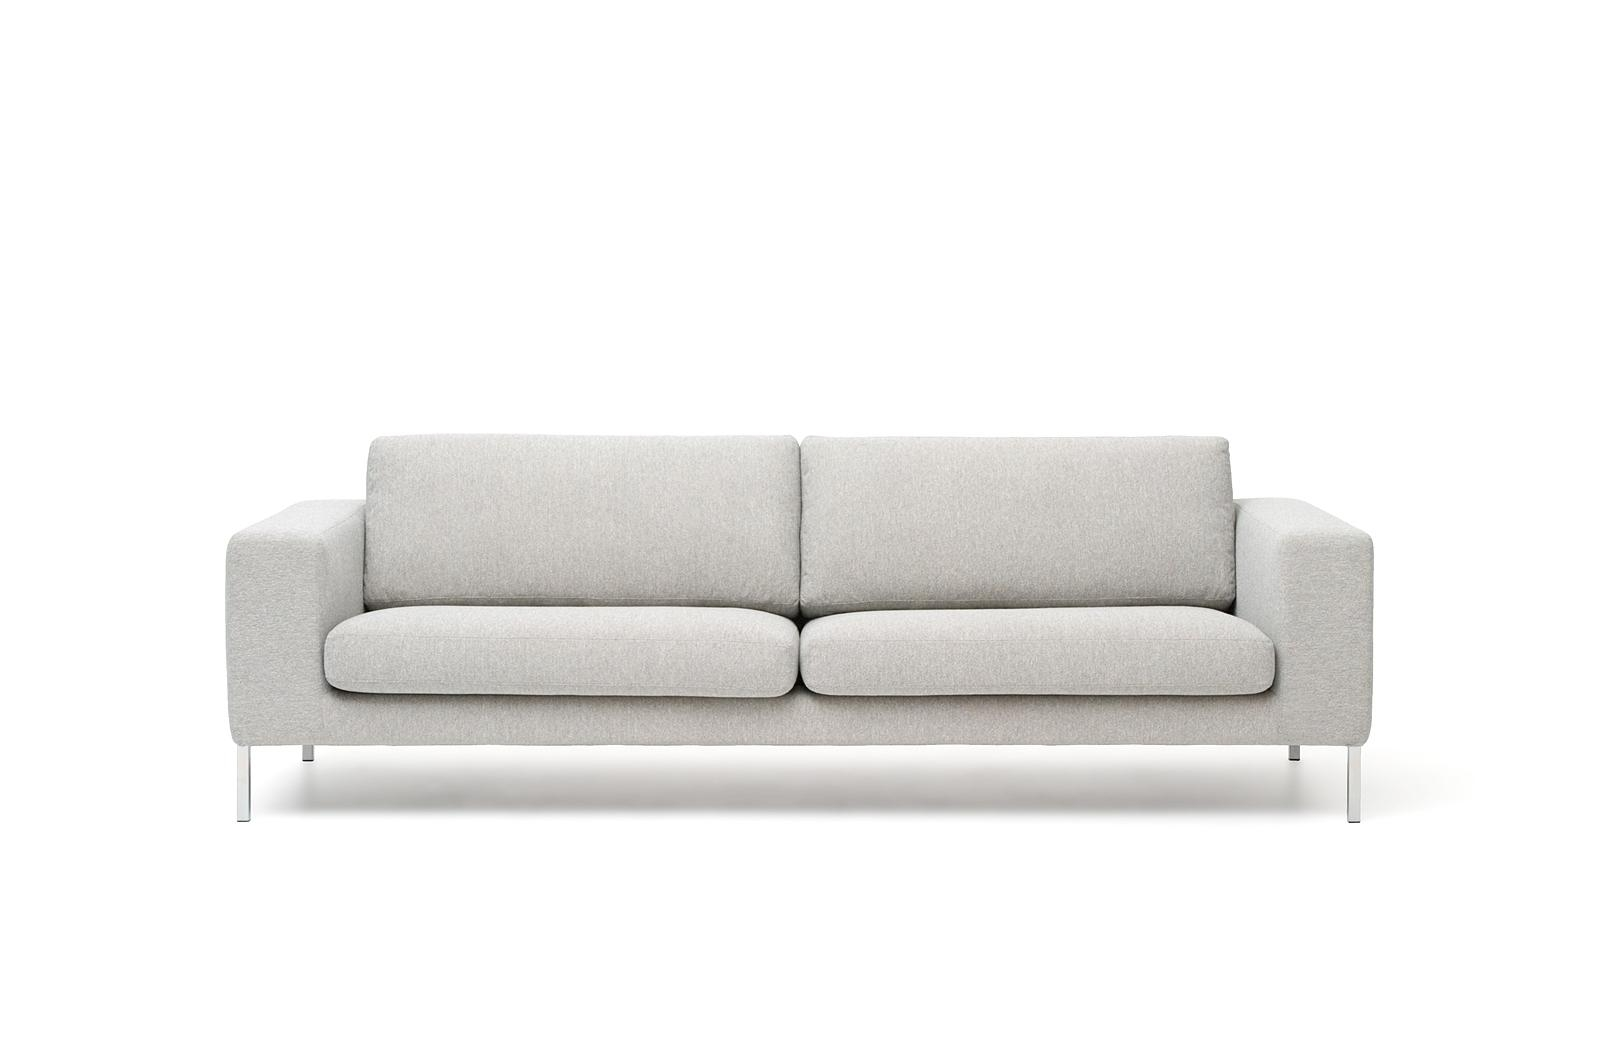 Neo | Bensen throughout Bensen Sofas